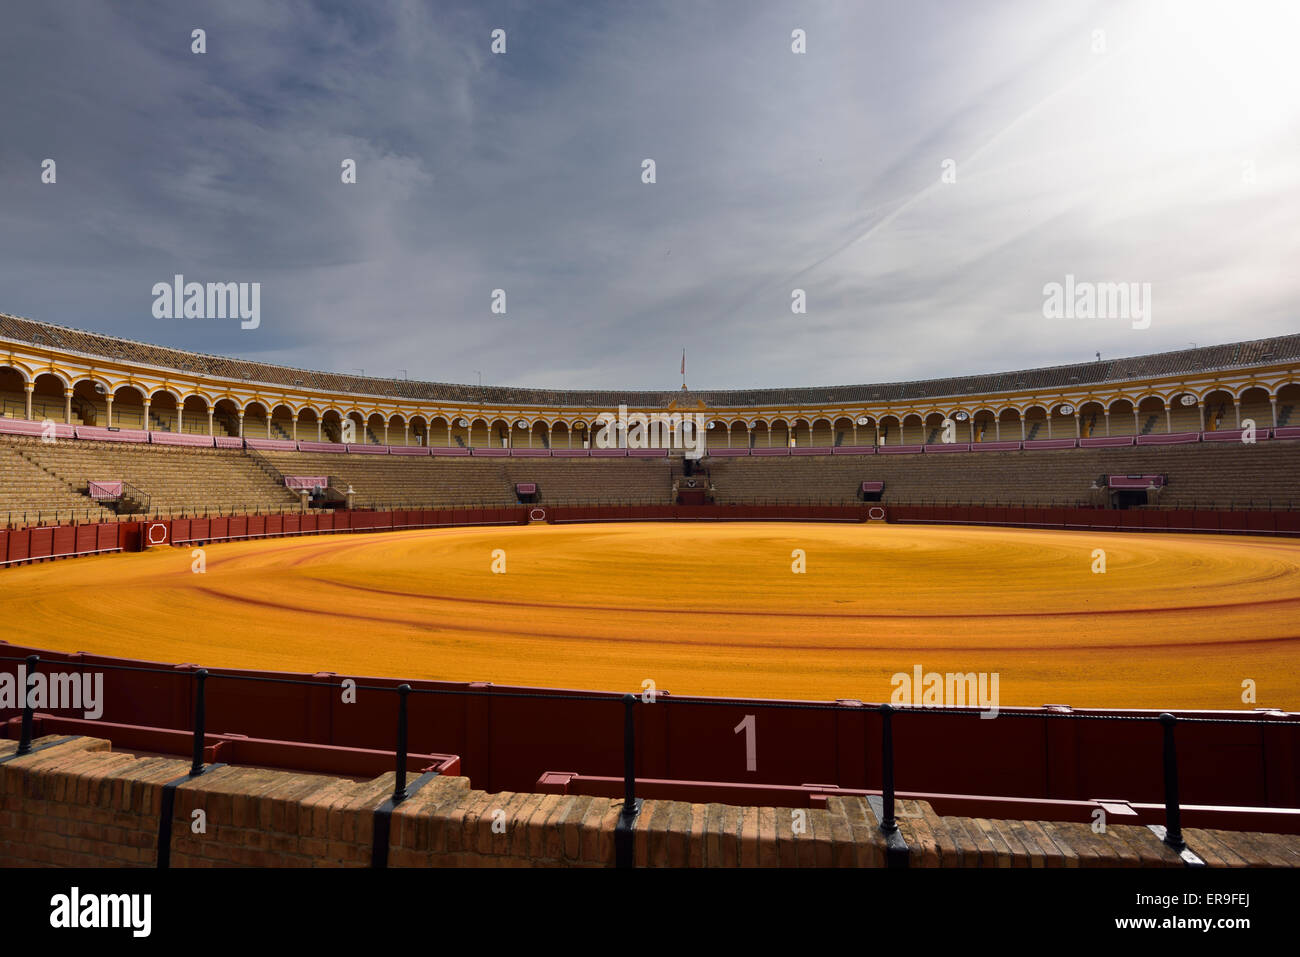 Golden groomed sand and empty stands at the Seville bullfighting ring - Stock Image